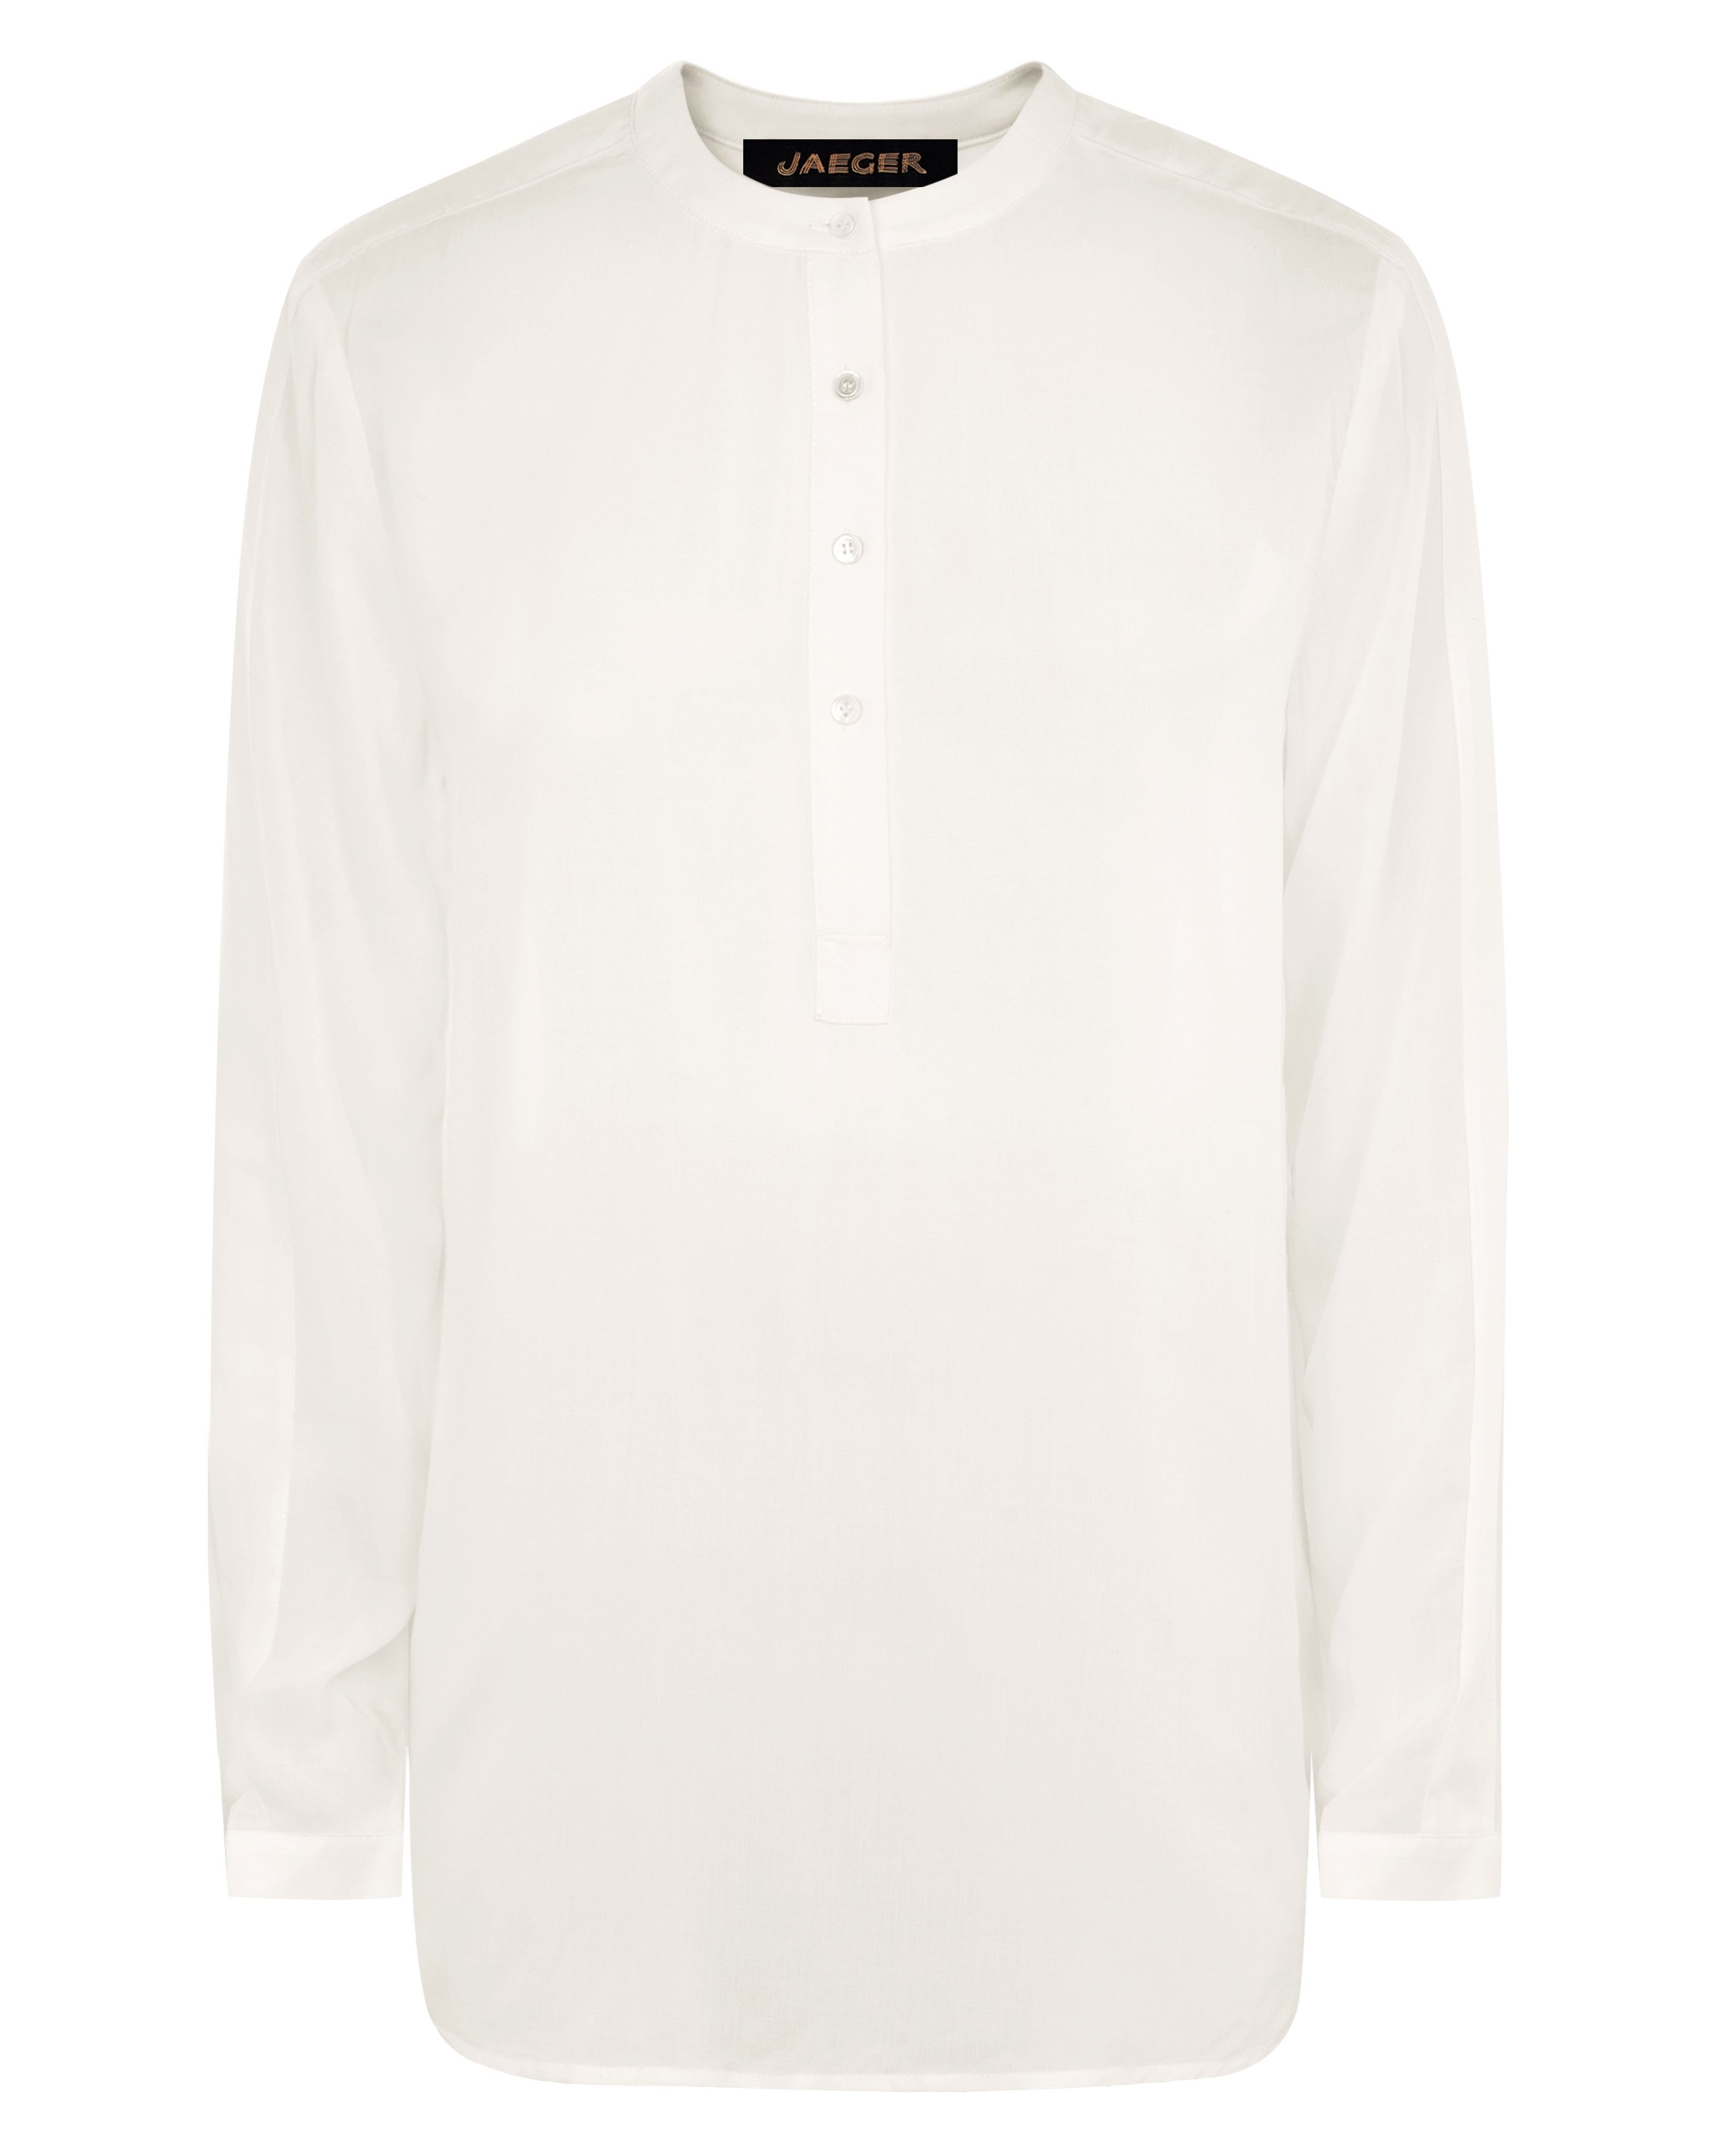 Jaeger Casual Shirt, White